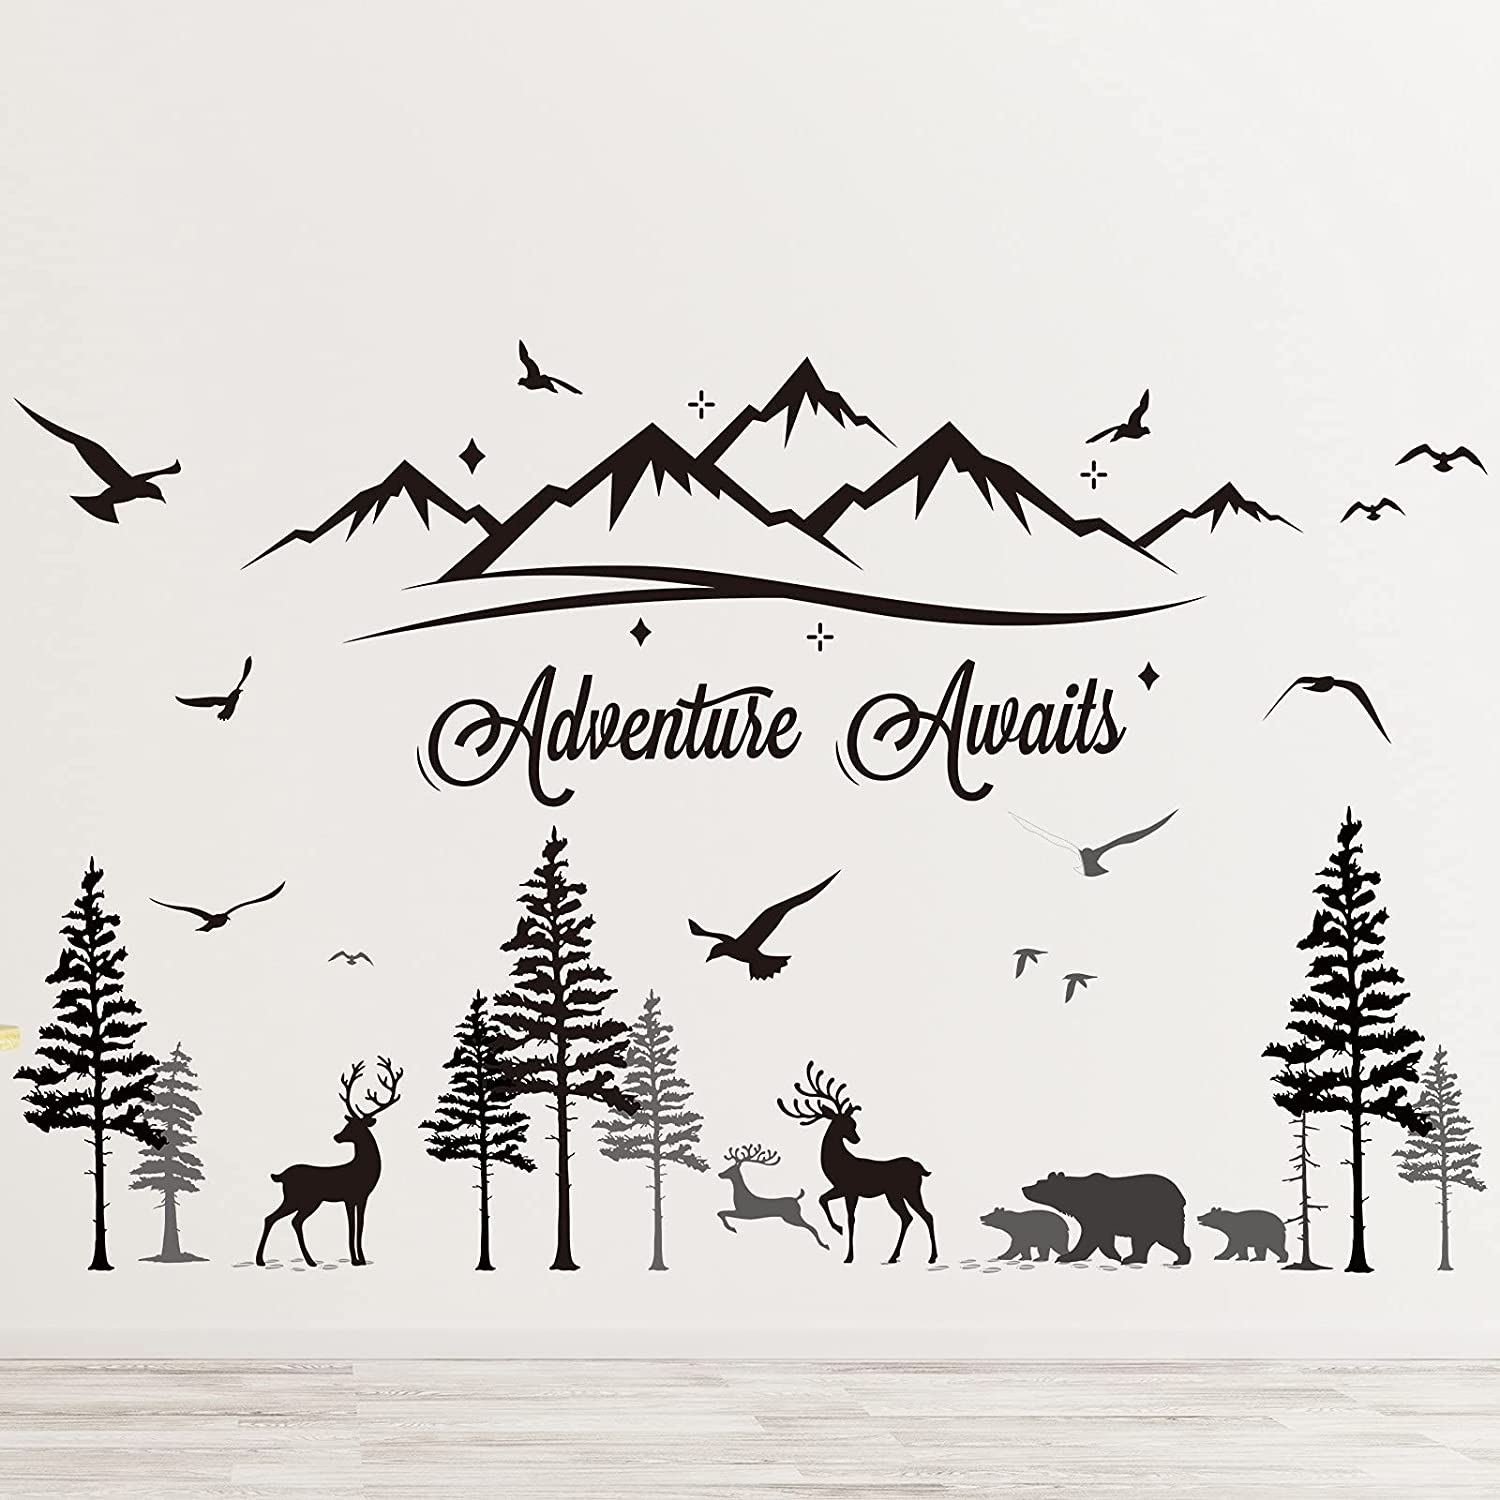 Adventure Awaits Wall Stickers Decals Removable Travel Inspirational Quotes Wall Decals Forest Pine Tree with Bear Home Decor Sticker for Kids Living Room Bedroom Nursery Room Home Decor